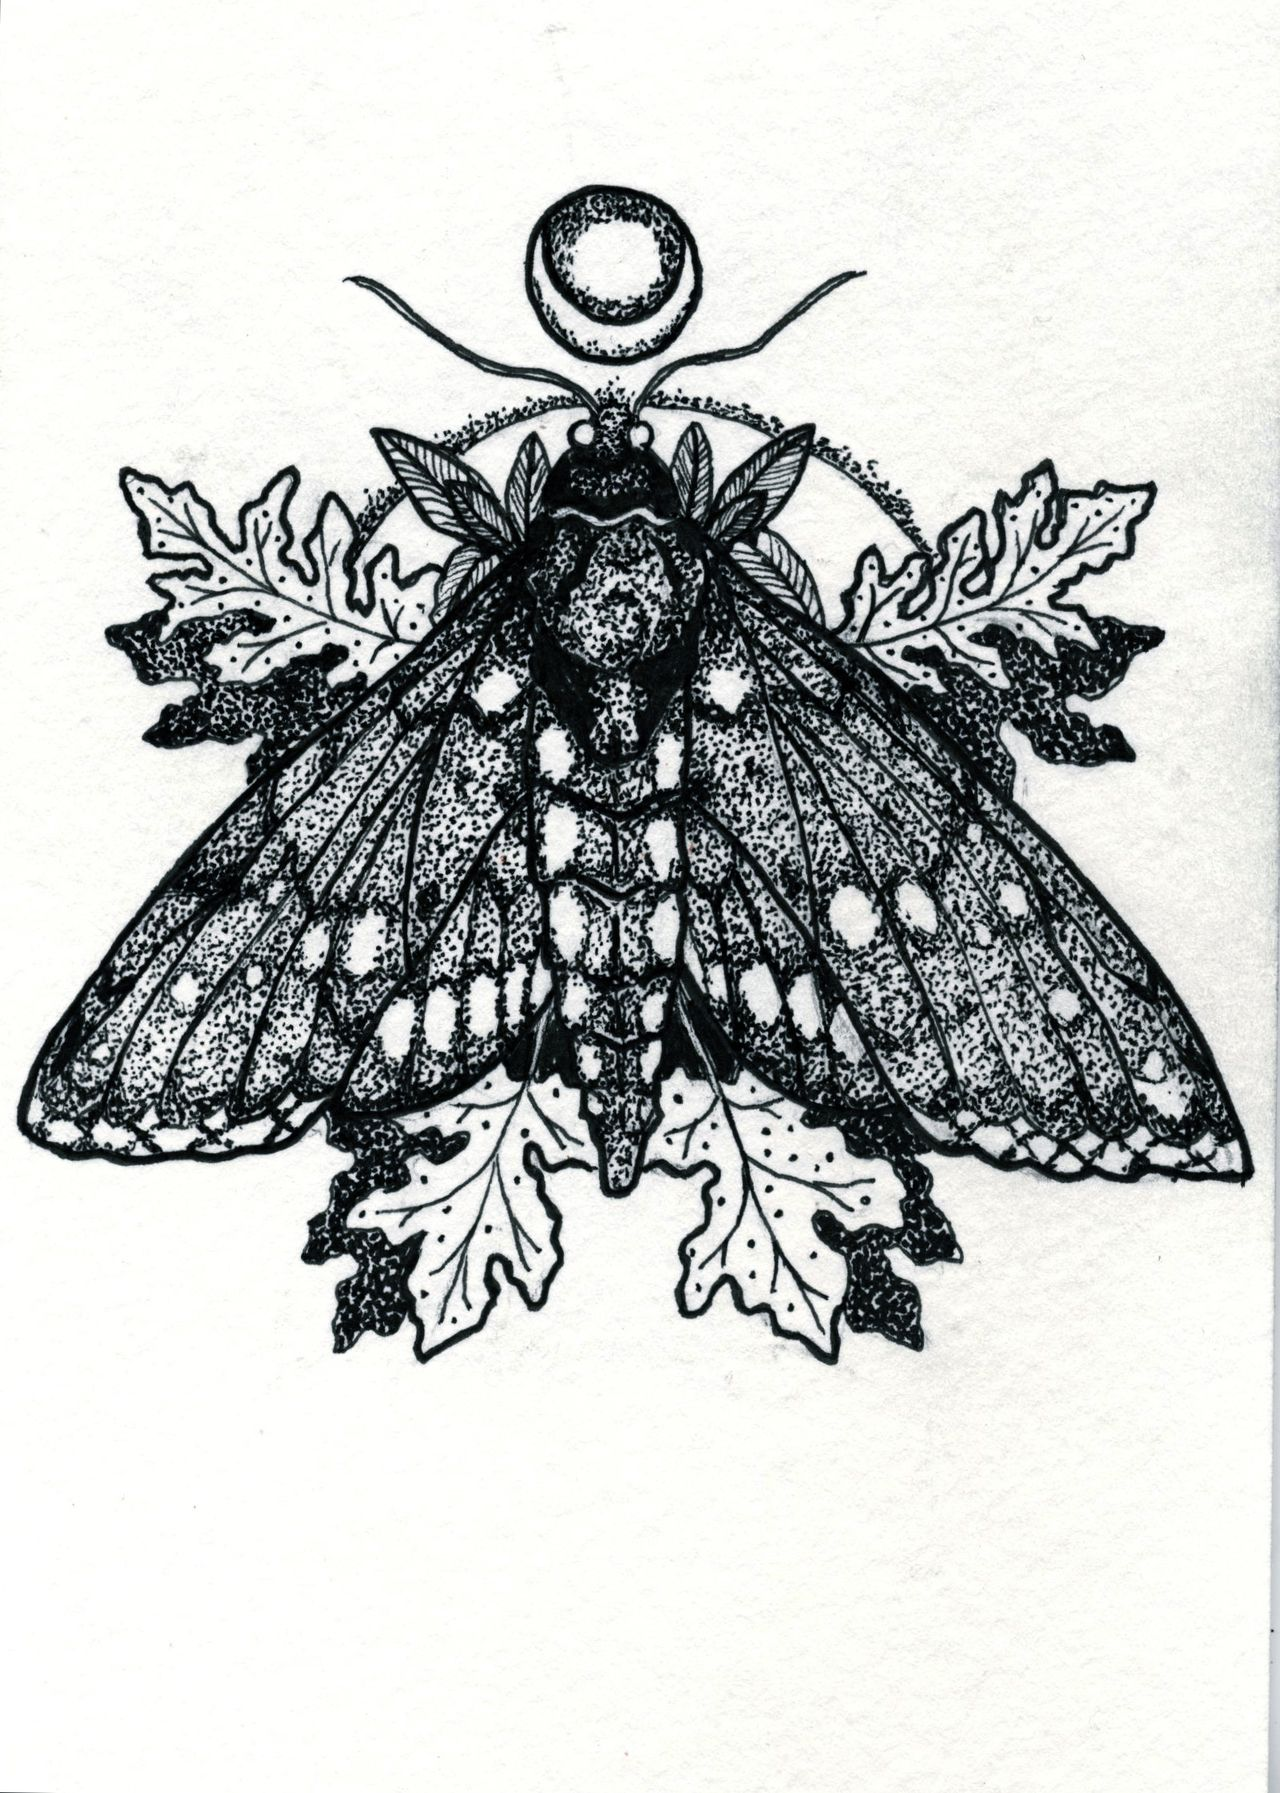 The o jays butterfly tattoos and clothes on pinterest - The Hangman S Beautiful Daughter